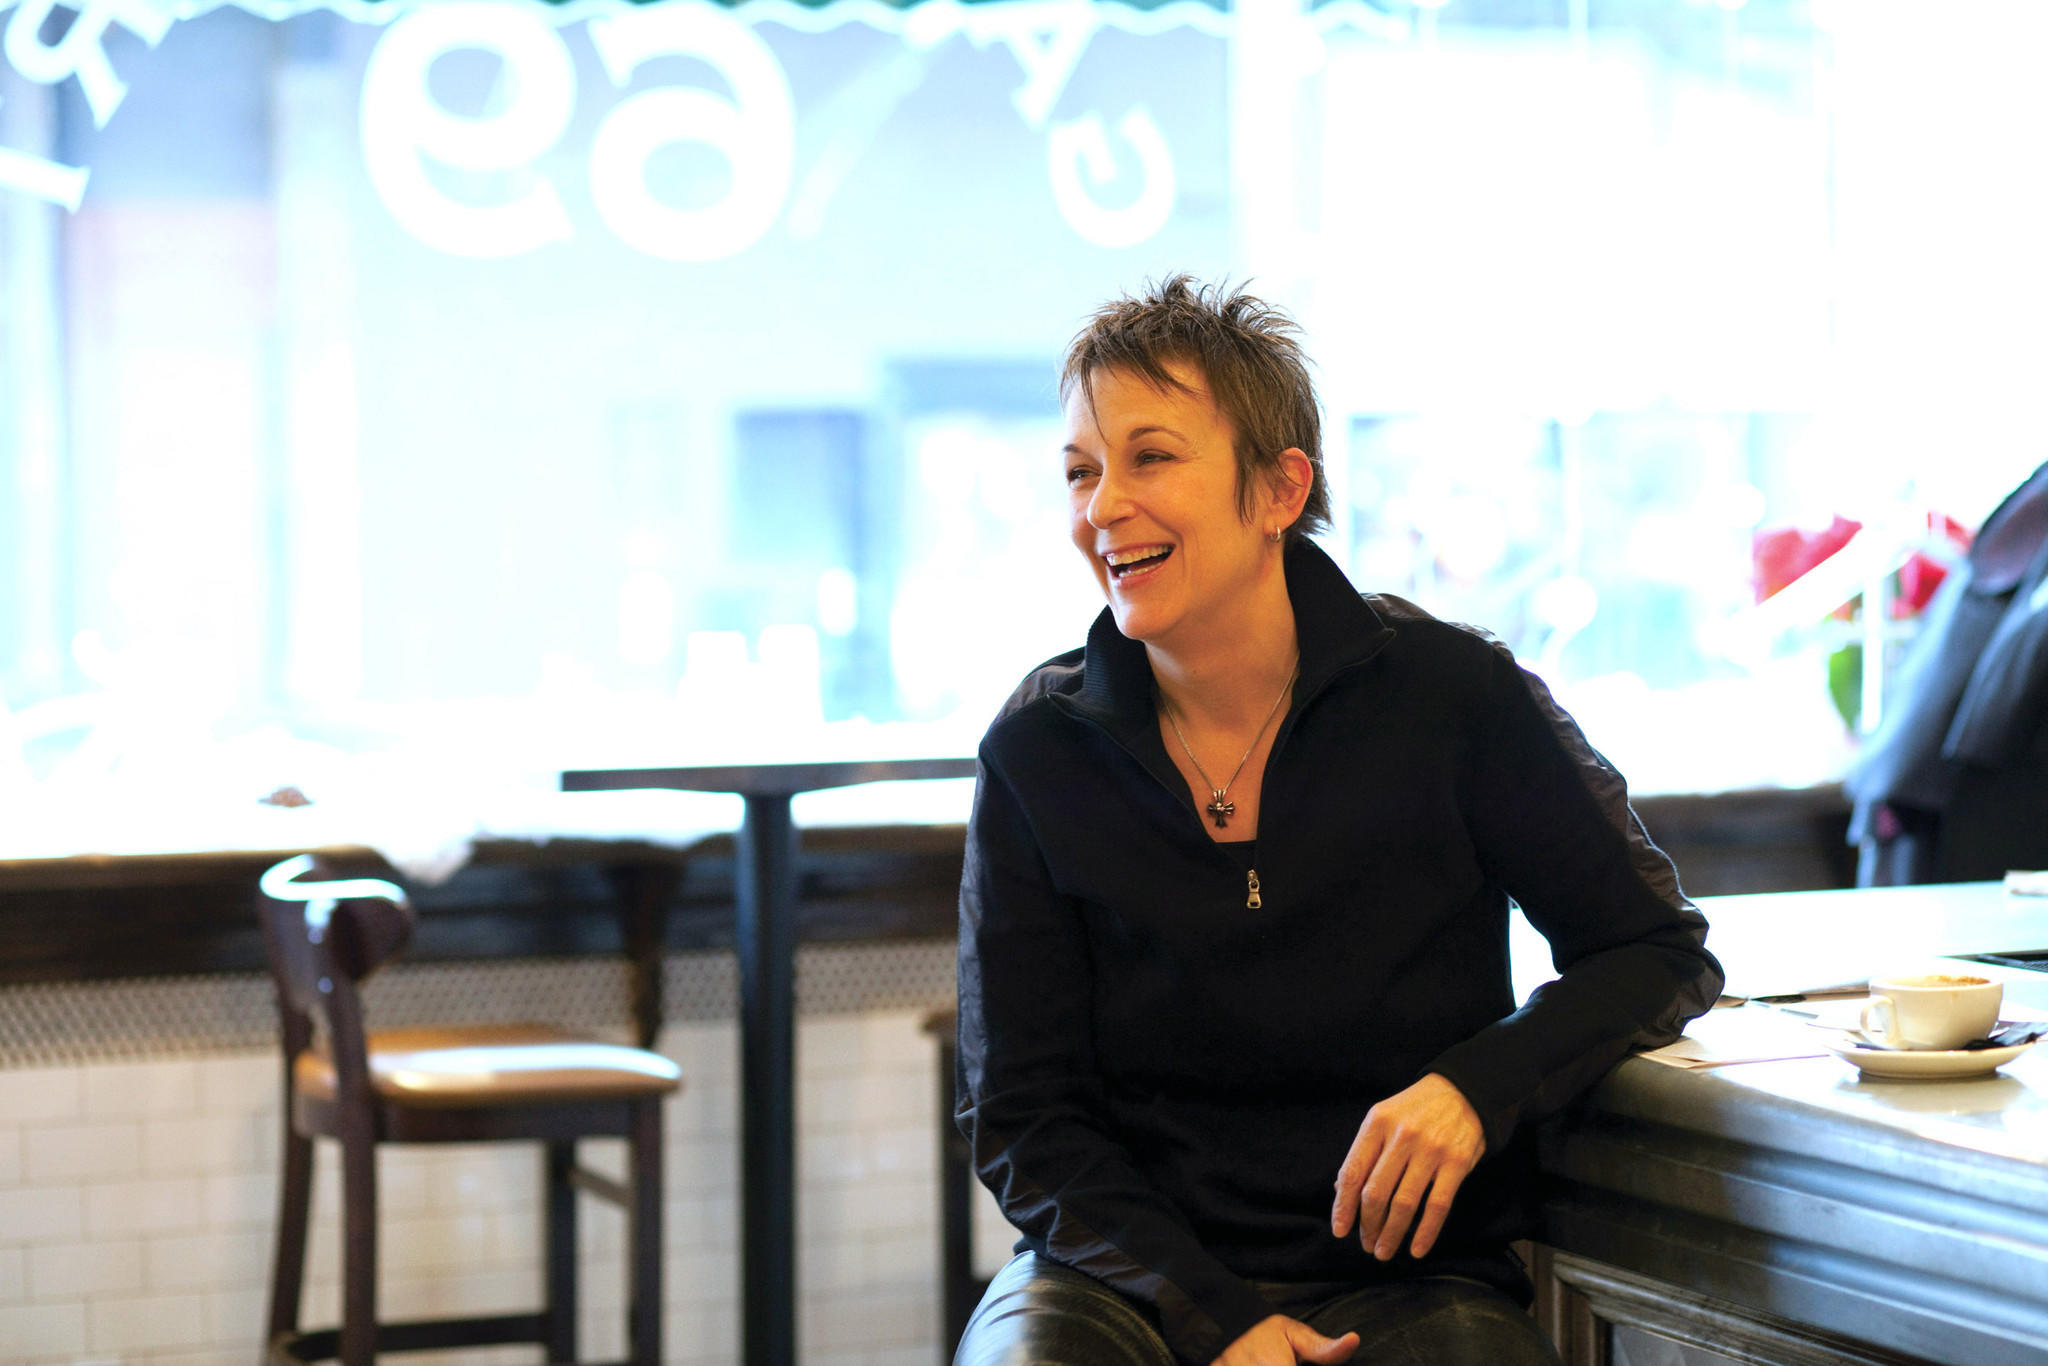 Singer-songwriter Mary Gauthier will appear April 21 at the Grammy Museum in Los Angeles.